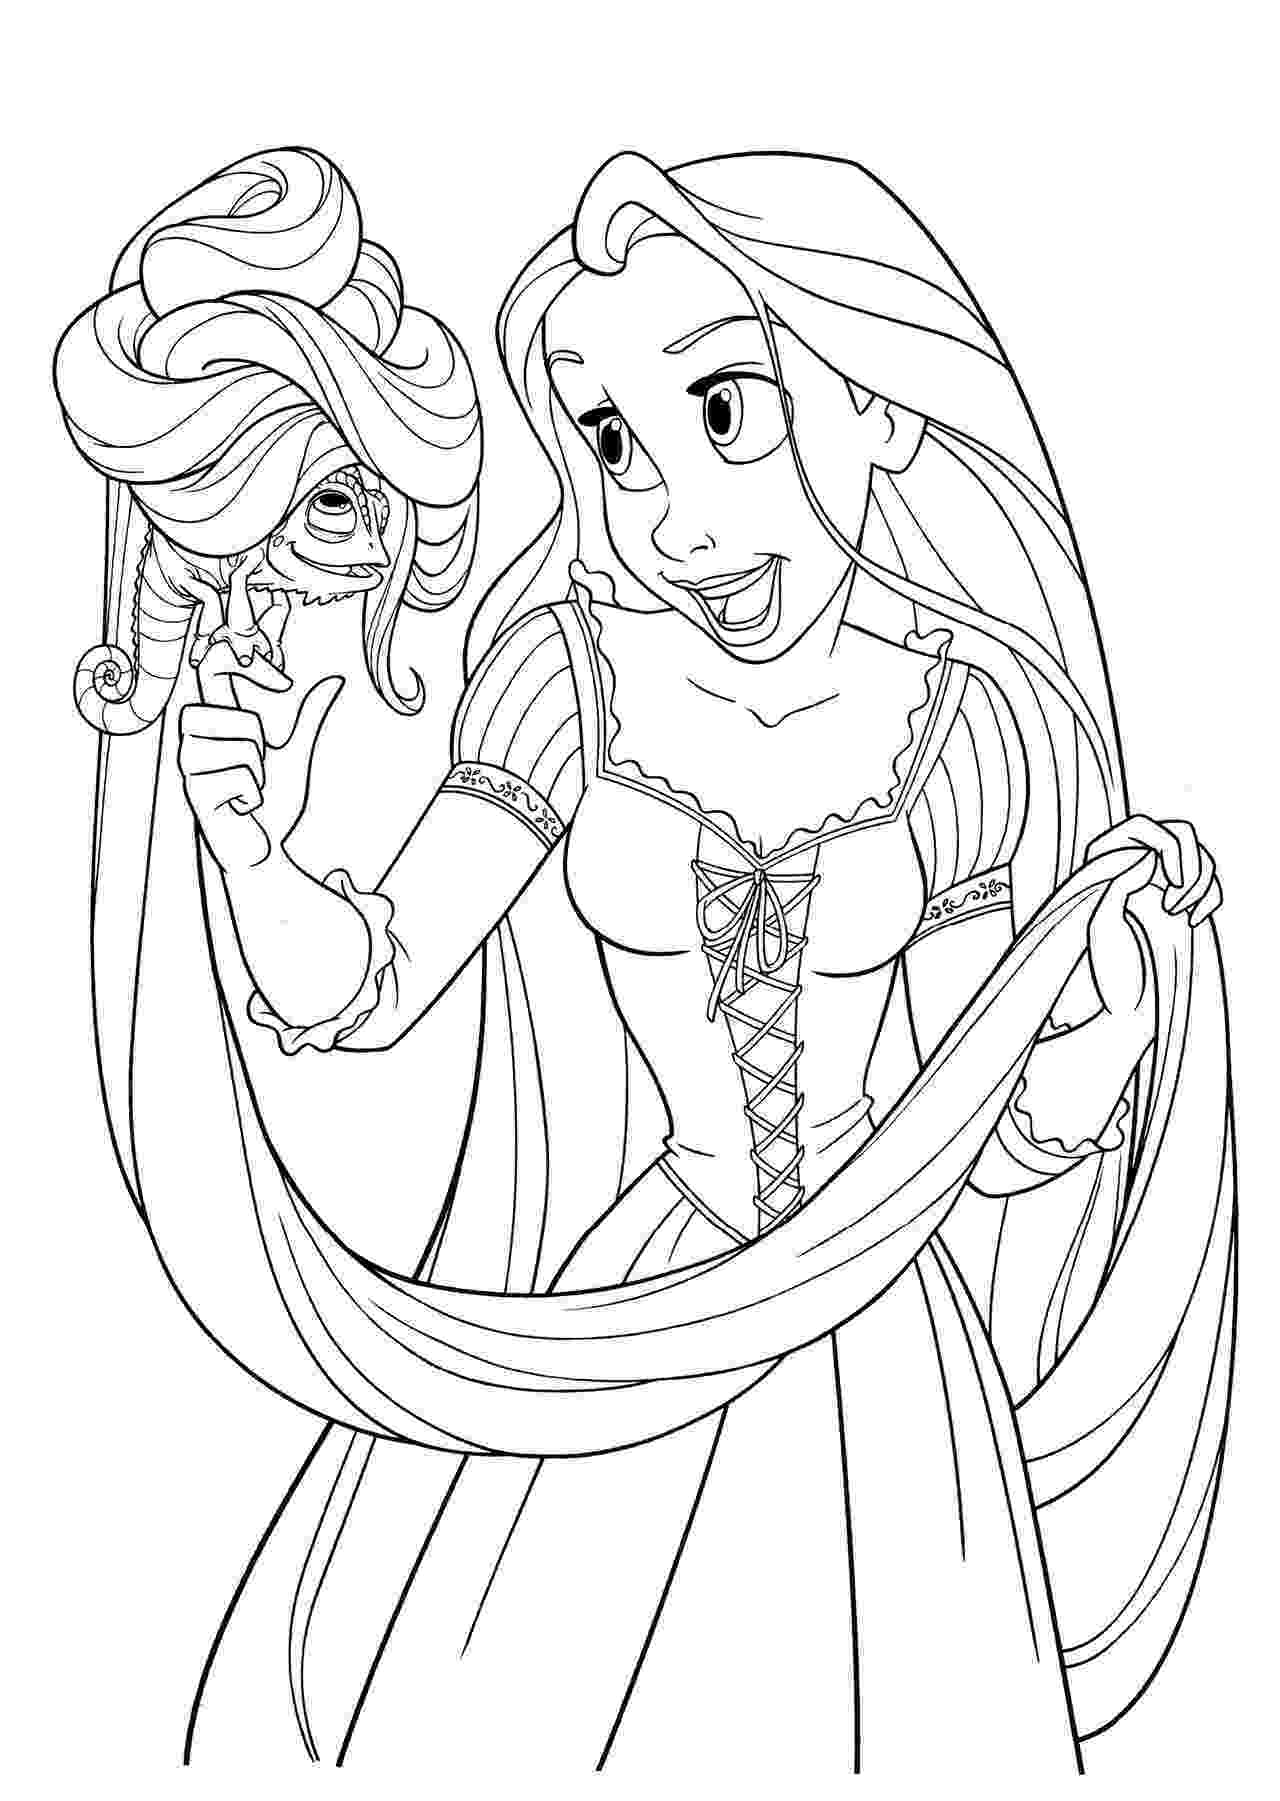 coloring book editor free printable tangled coloring pages for kids book coloring editor